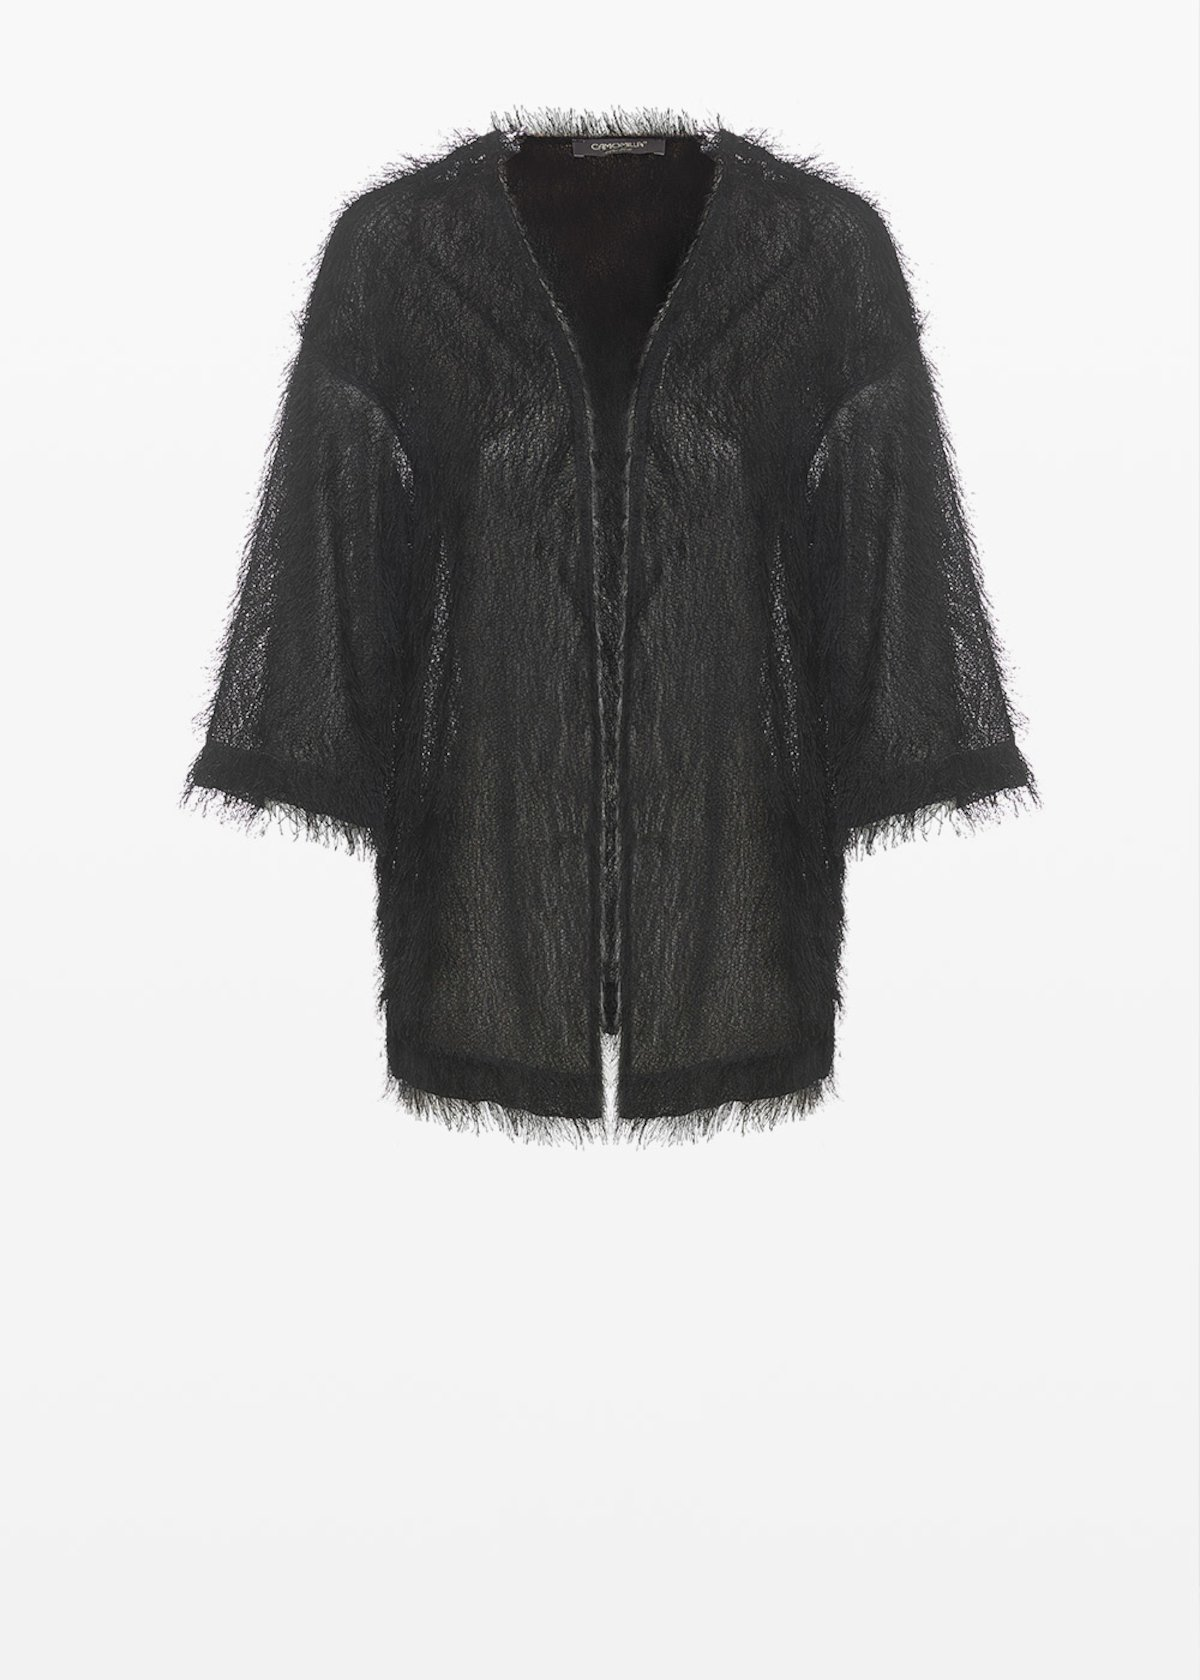 Craing faux fur unlined shrug - Black - Woman - Category image